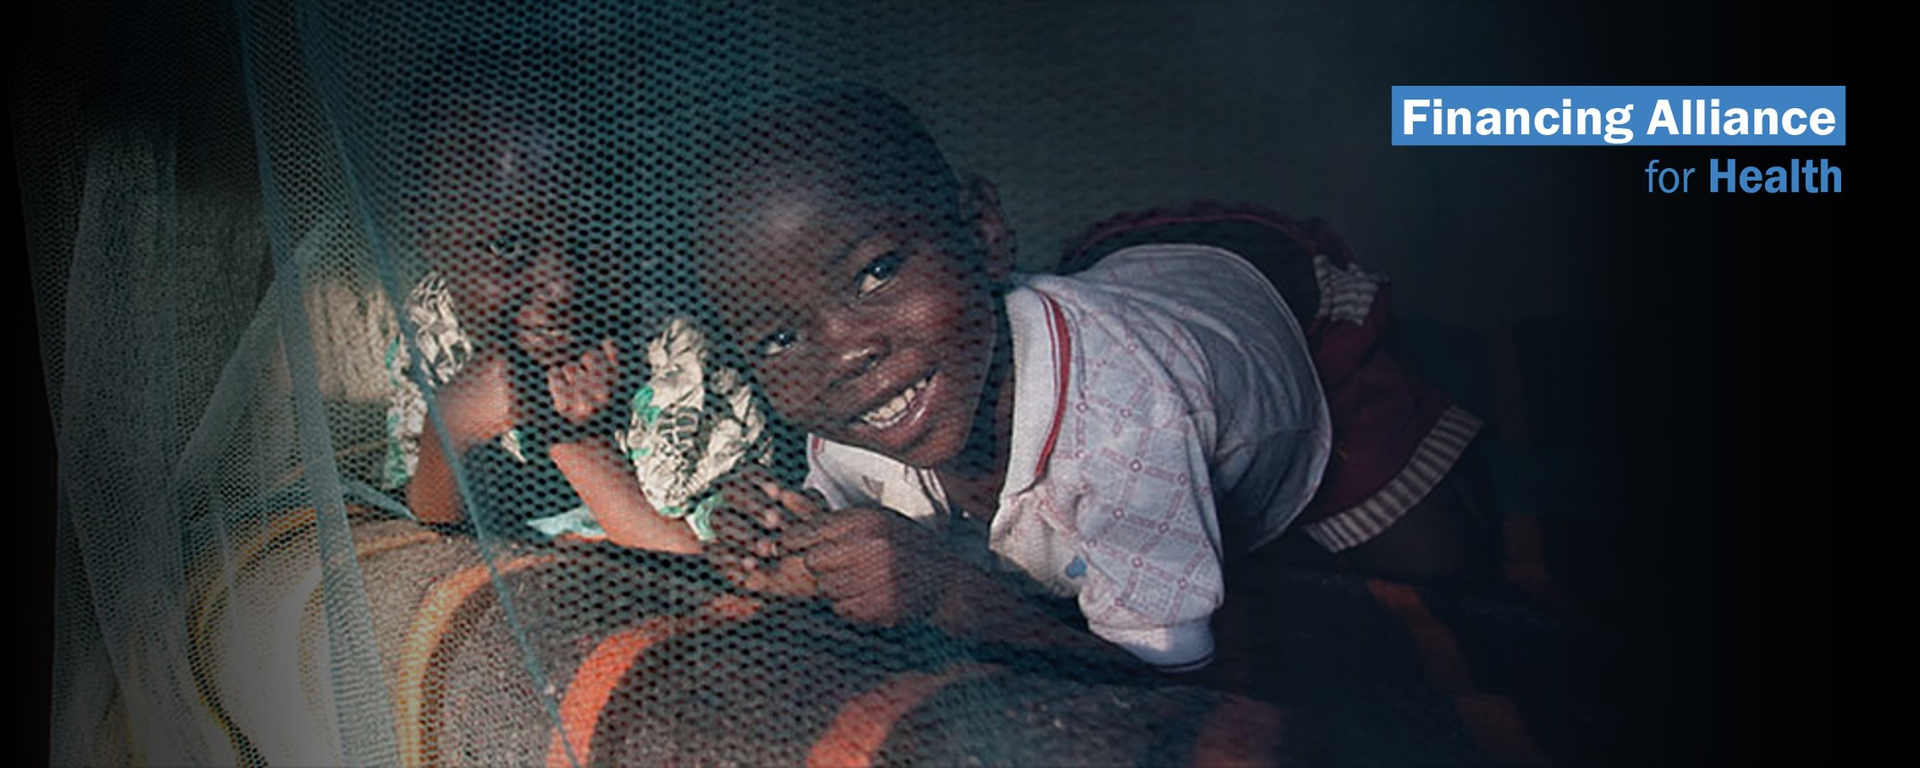 Financing Alliance for Health - Consulting Opportunity Movemeback African opportunity cover image